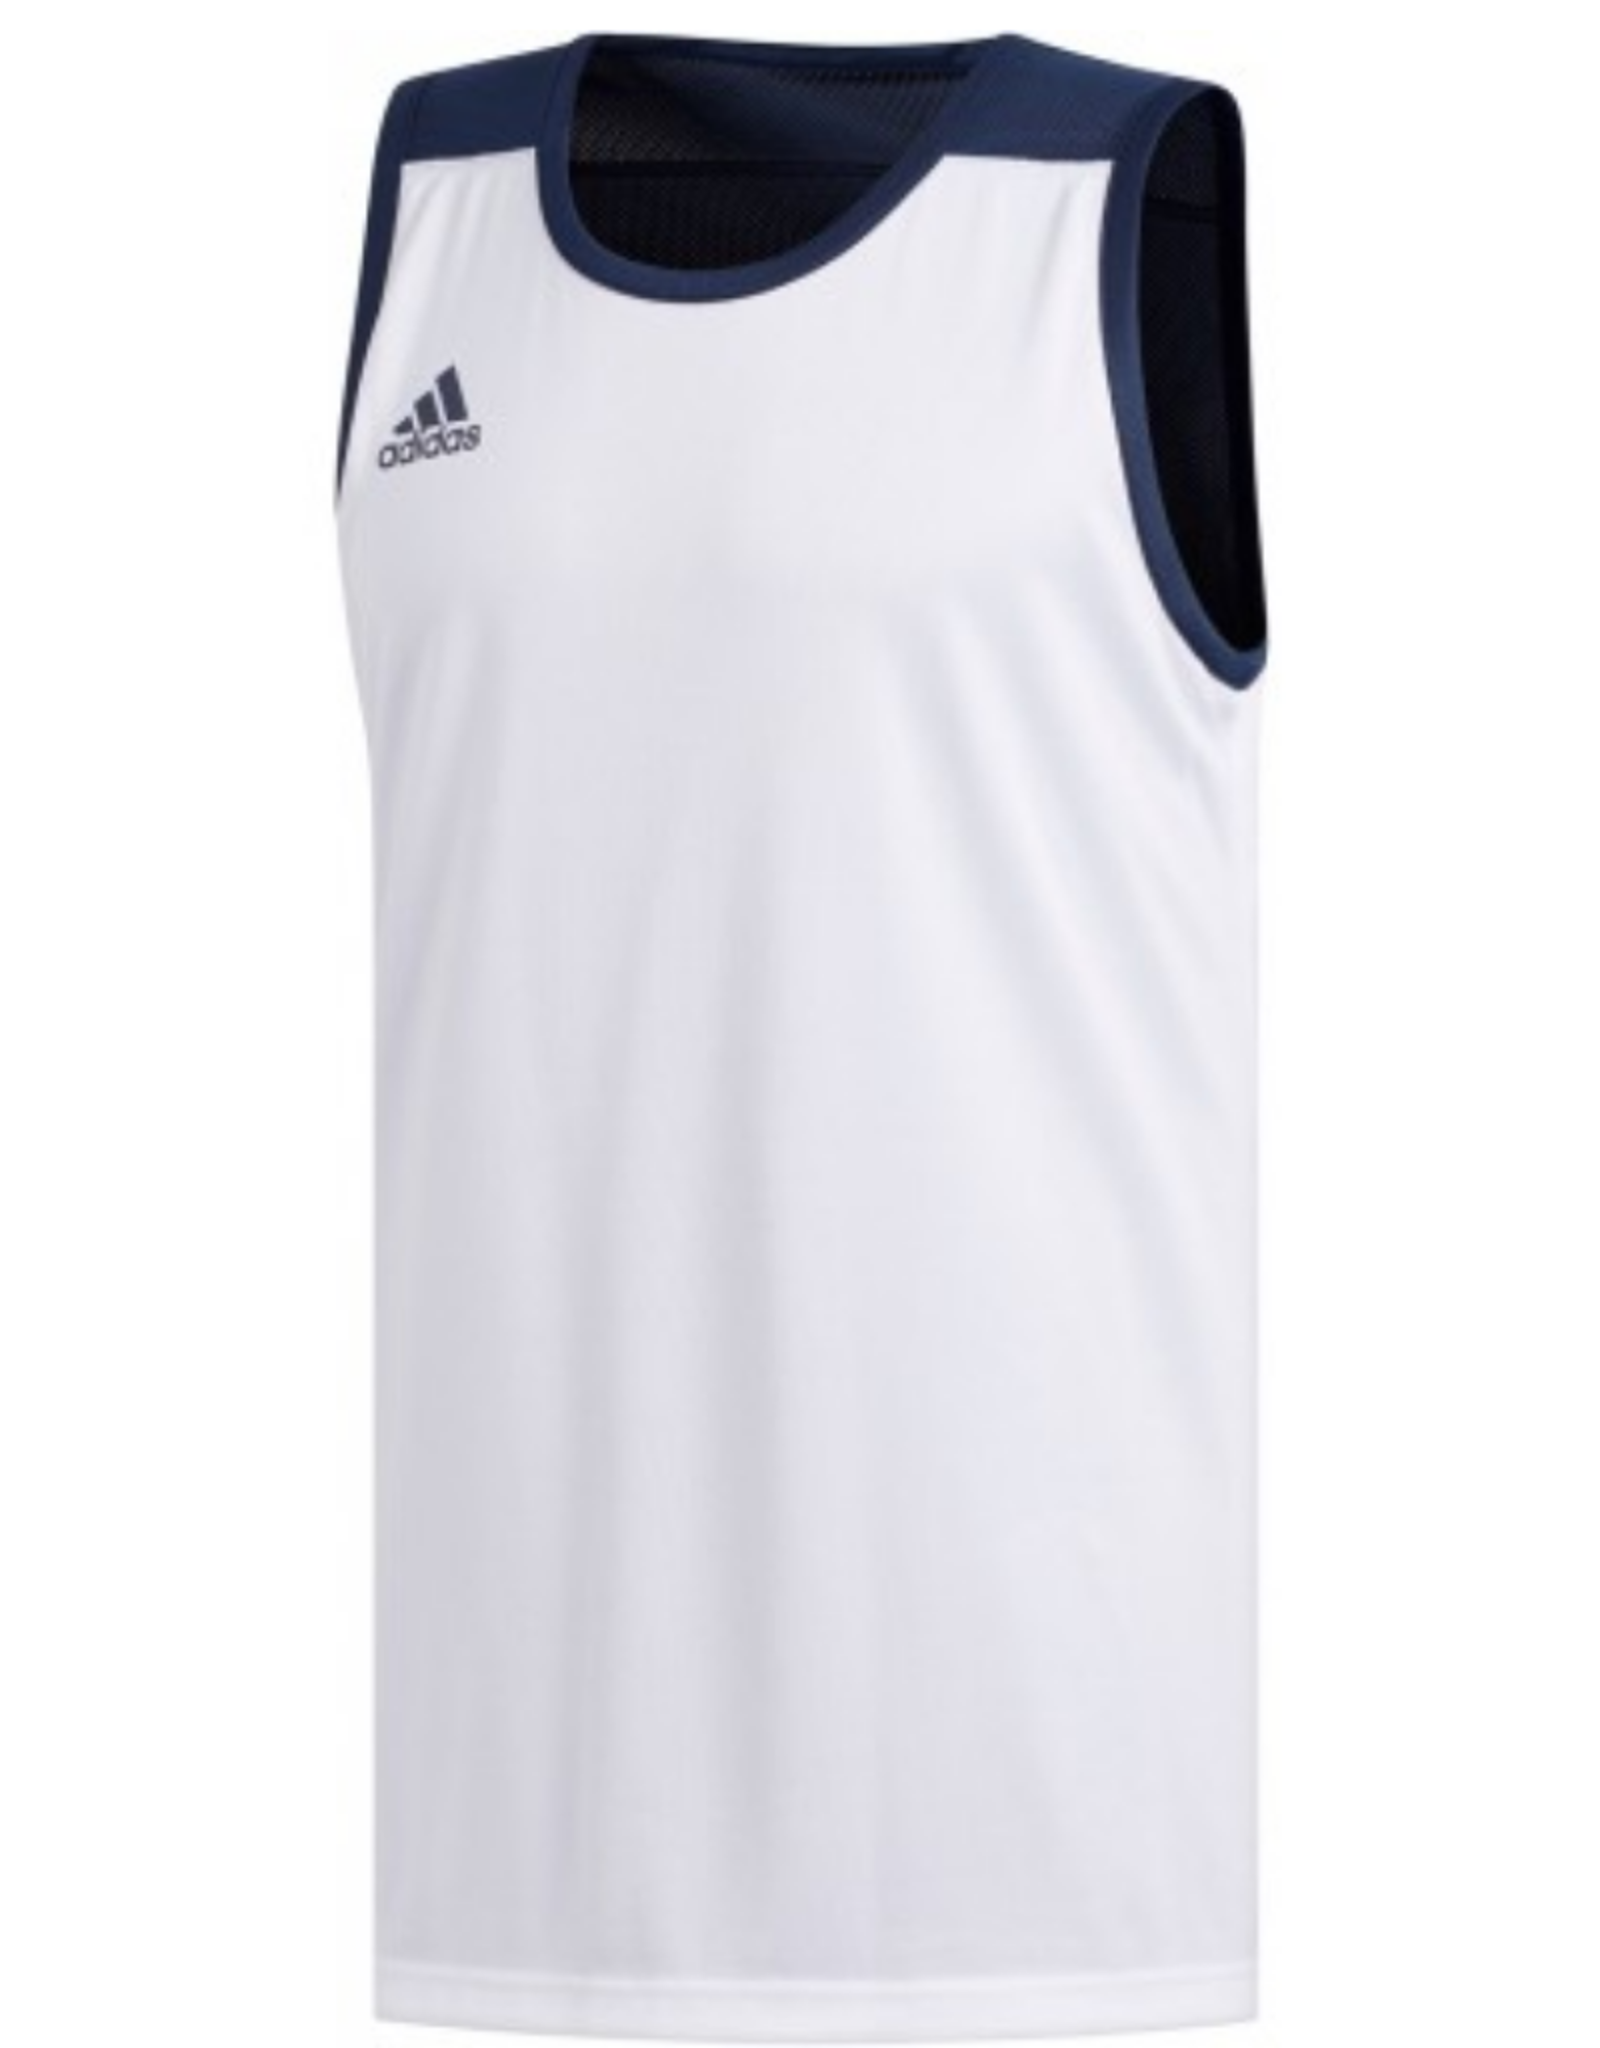 Adidas Adidas Men's 3G Speed Reversible Basketball Jersey Navy